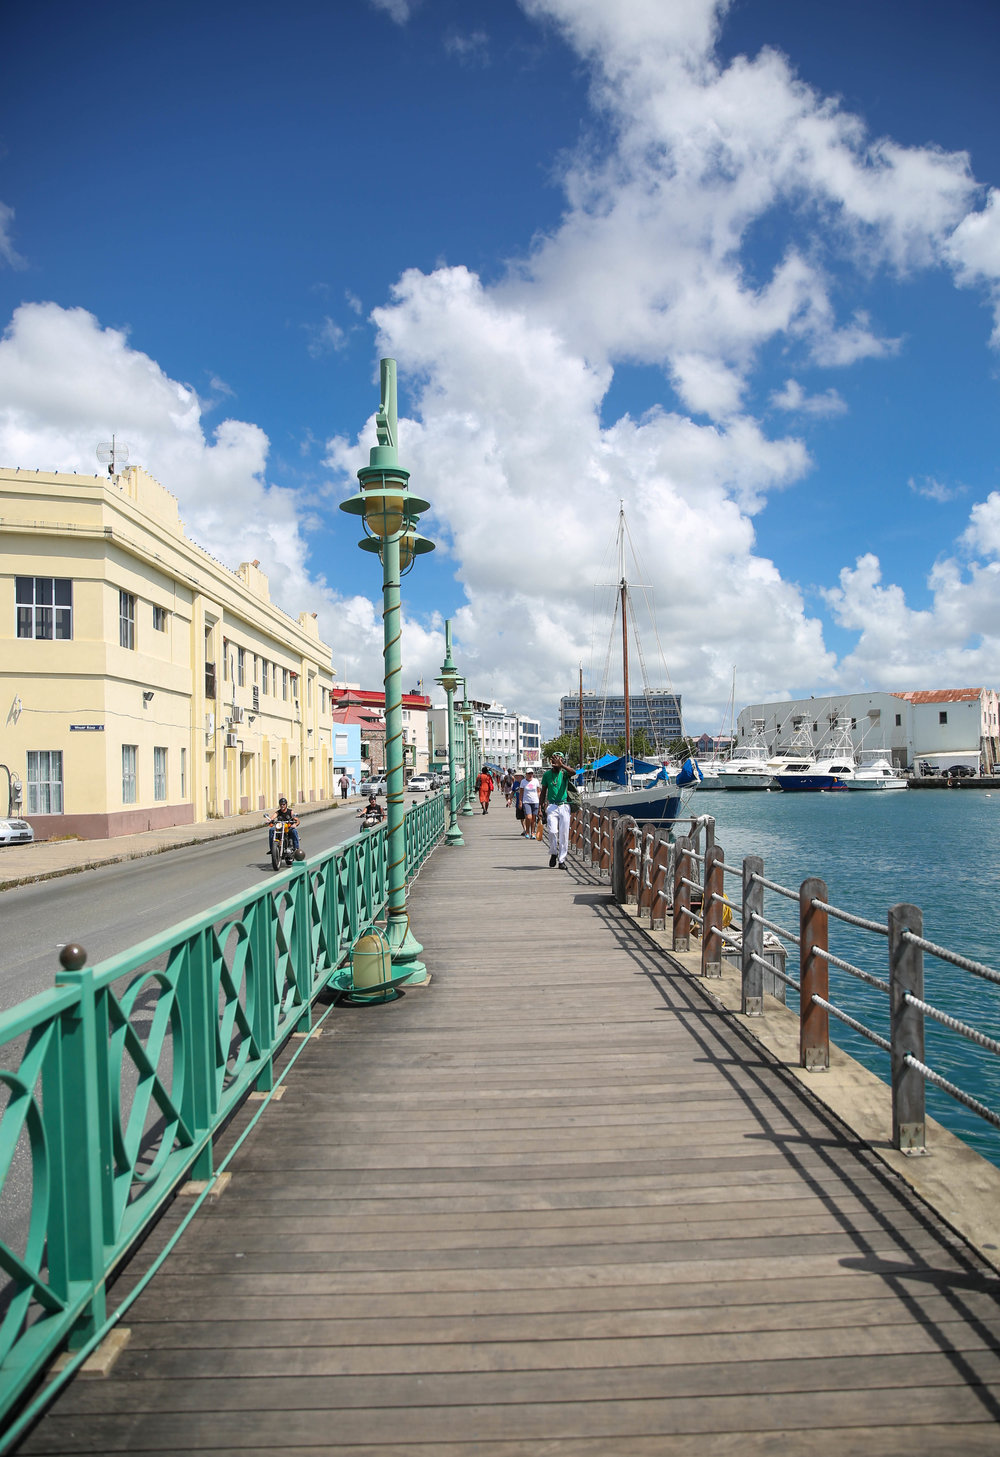 barbados-bridgetown-lauren-schwaiger-travel-blog.jpg